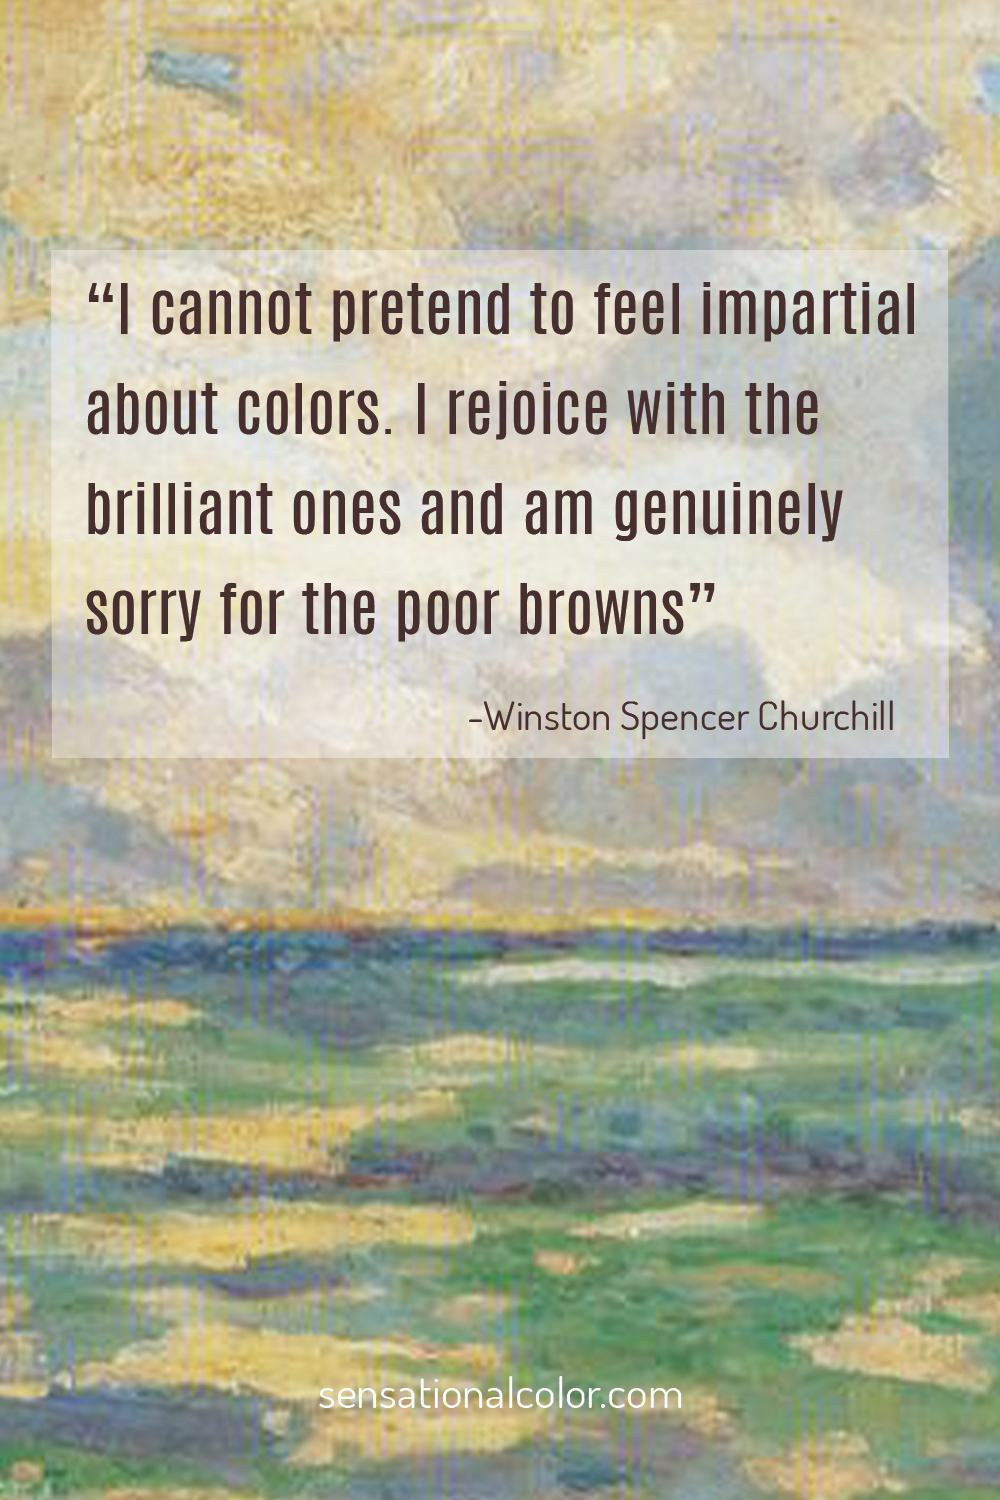 """I cannot pretend to feel impartial about colors. I rejoice with the brilliant ones and am genuinely sorry for the poor browns."" - Winston Spencer Churchill"